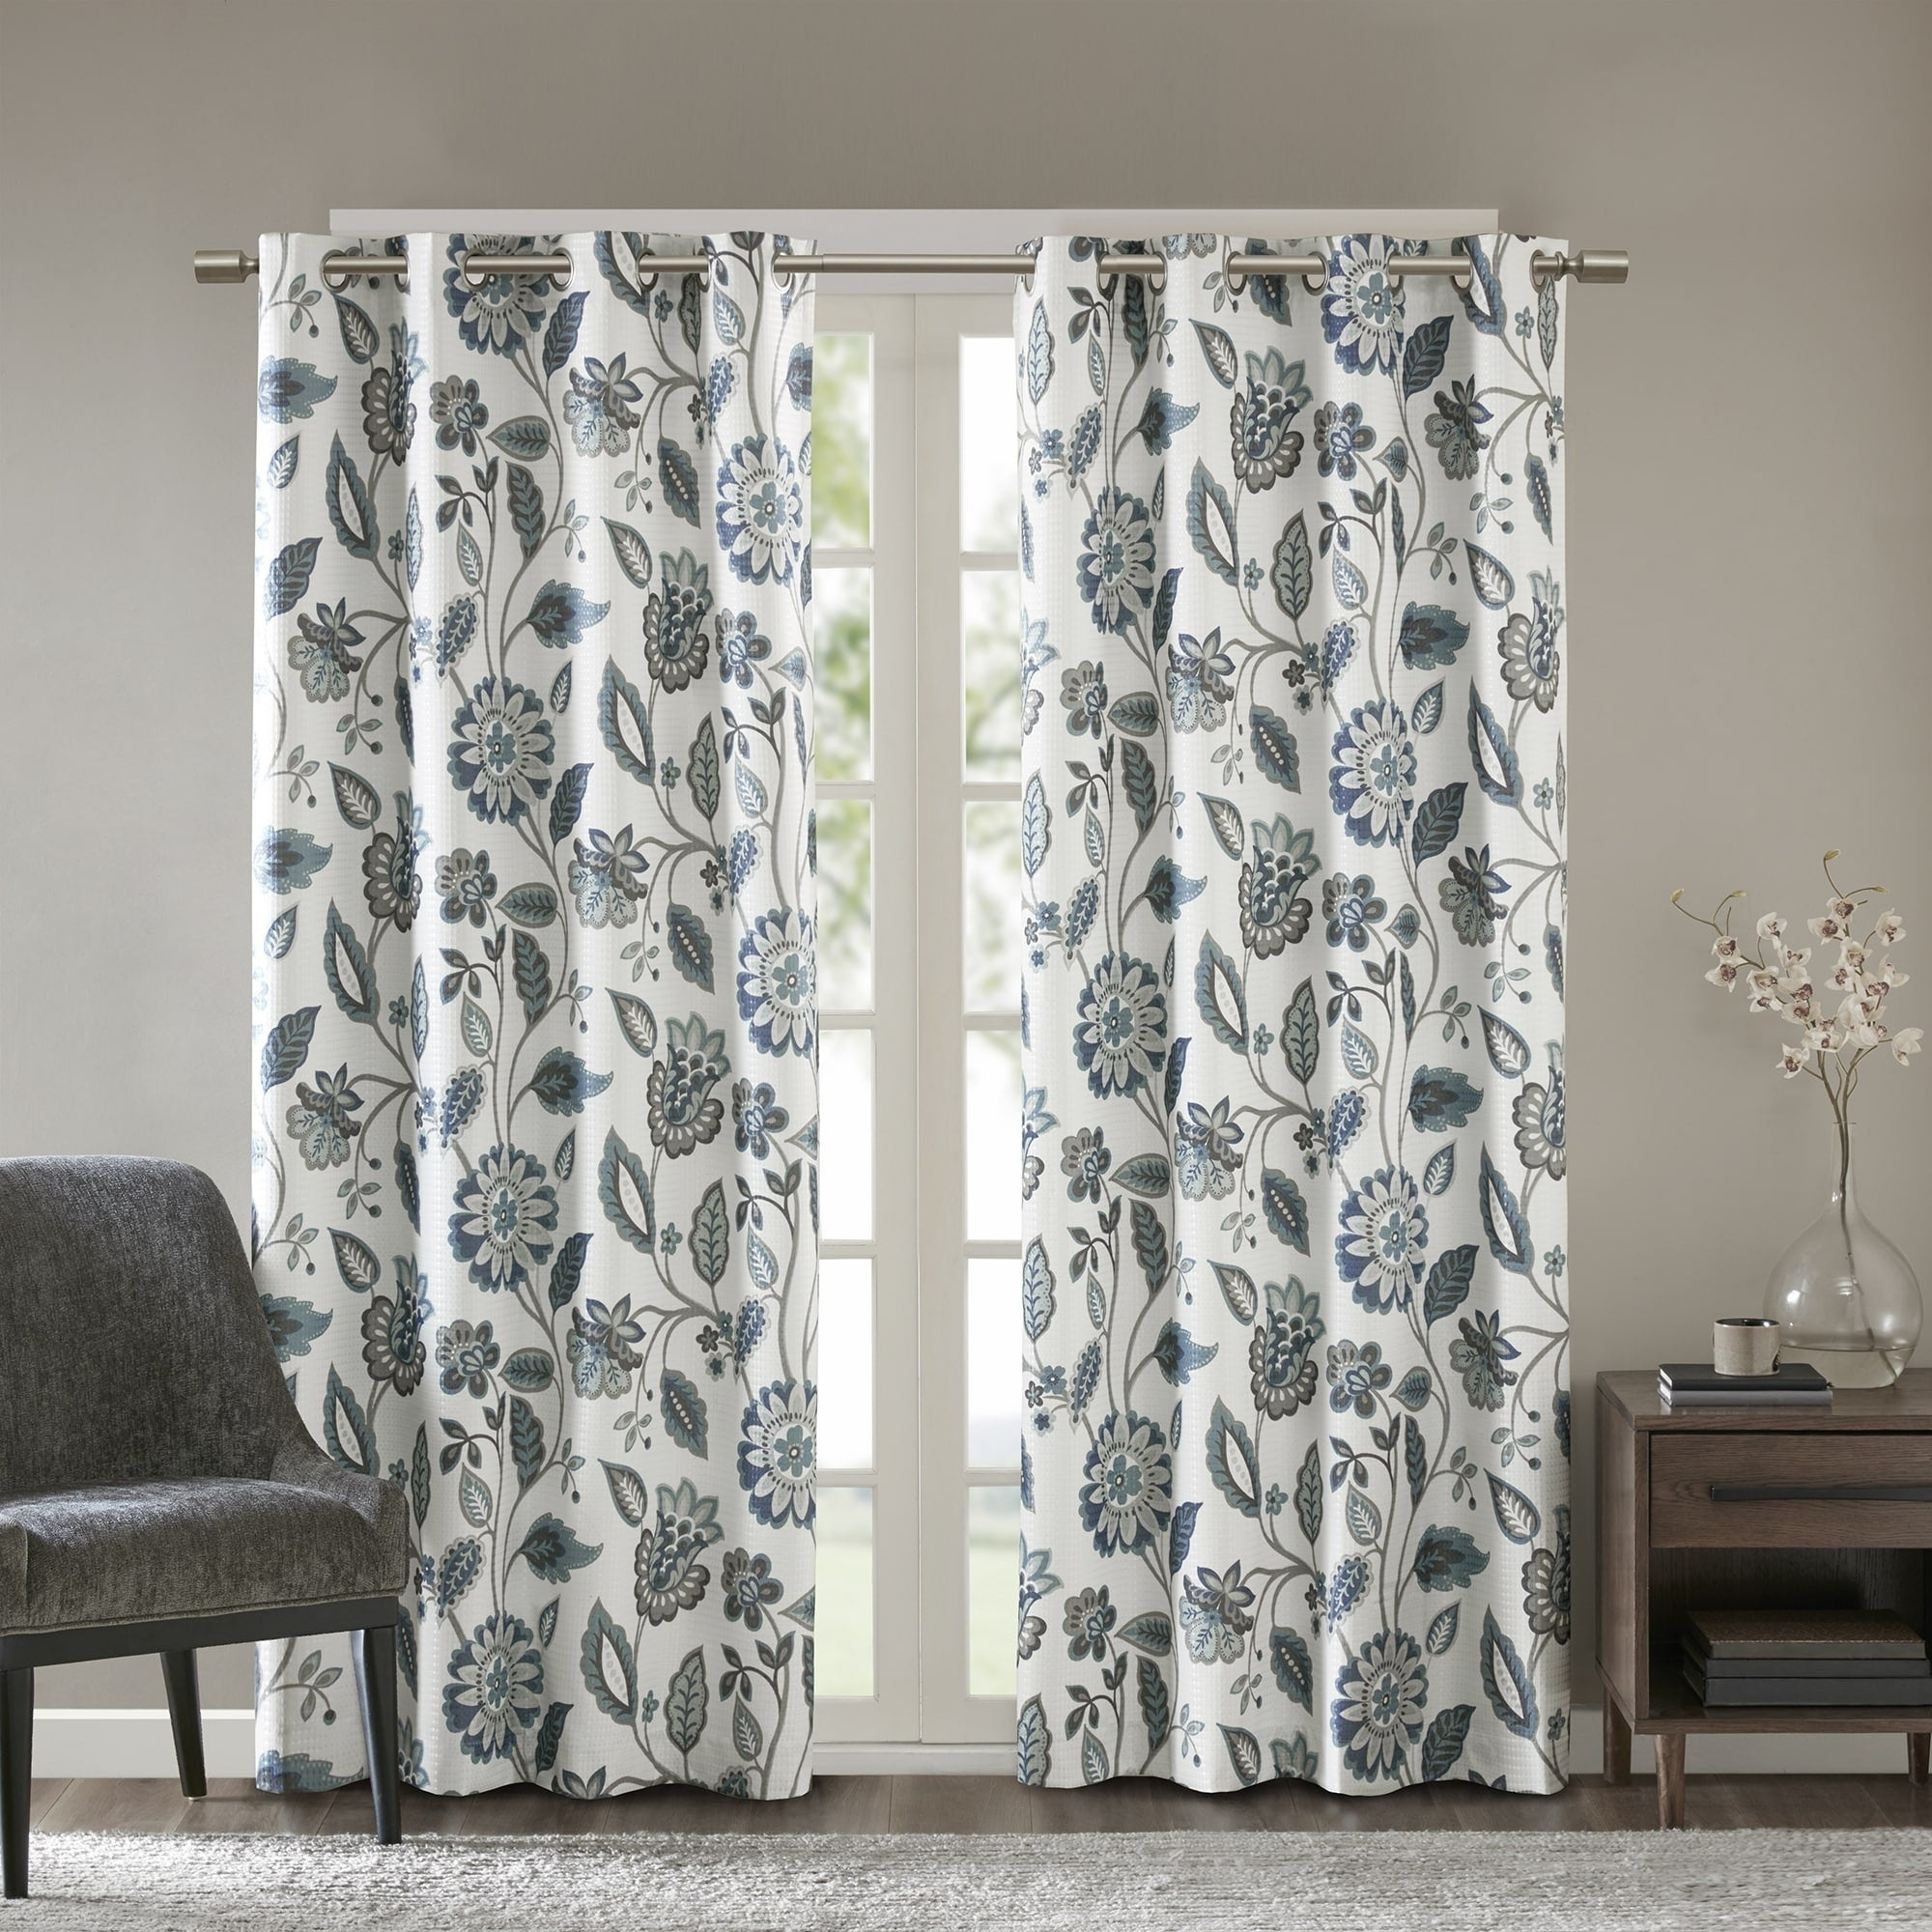 Sunsmart Laurel Jacquard Floral Printed Room Darkening Grommet Single Curtain Panel Throughout Sunsmart Dahlia Paisley Printed Total Blackout Single Window Curtain Panels (View 23 of 30)